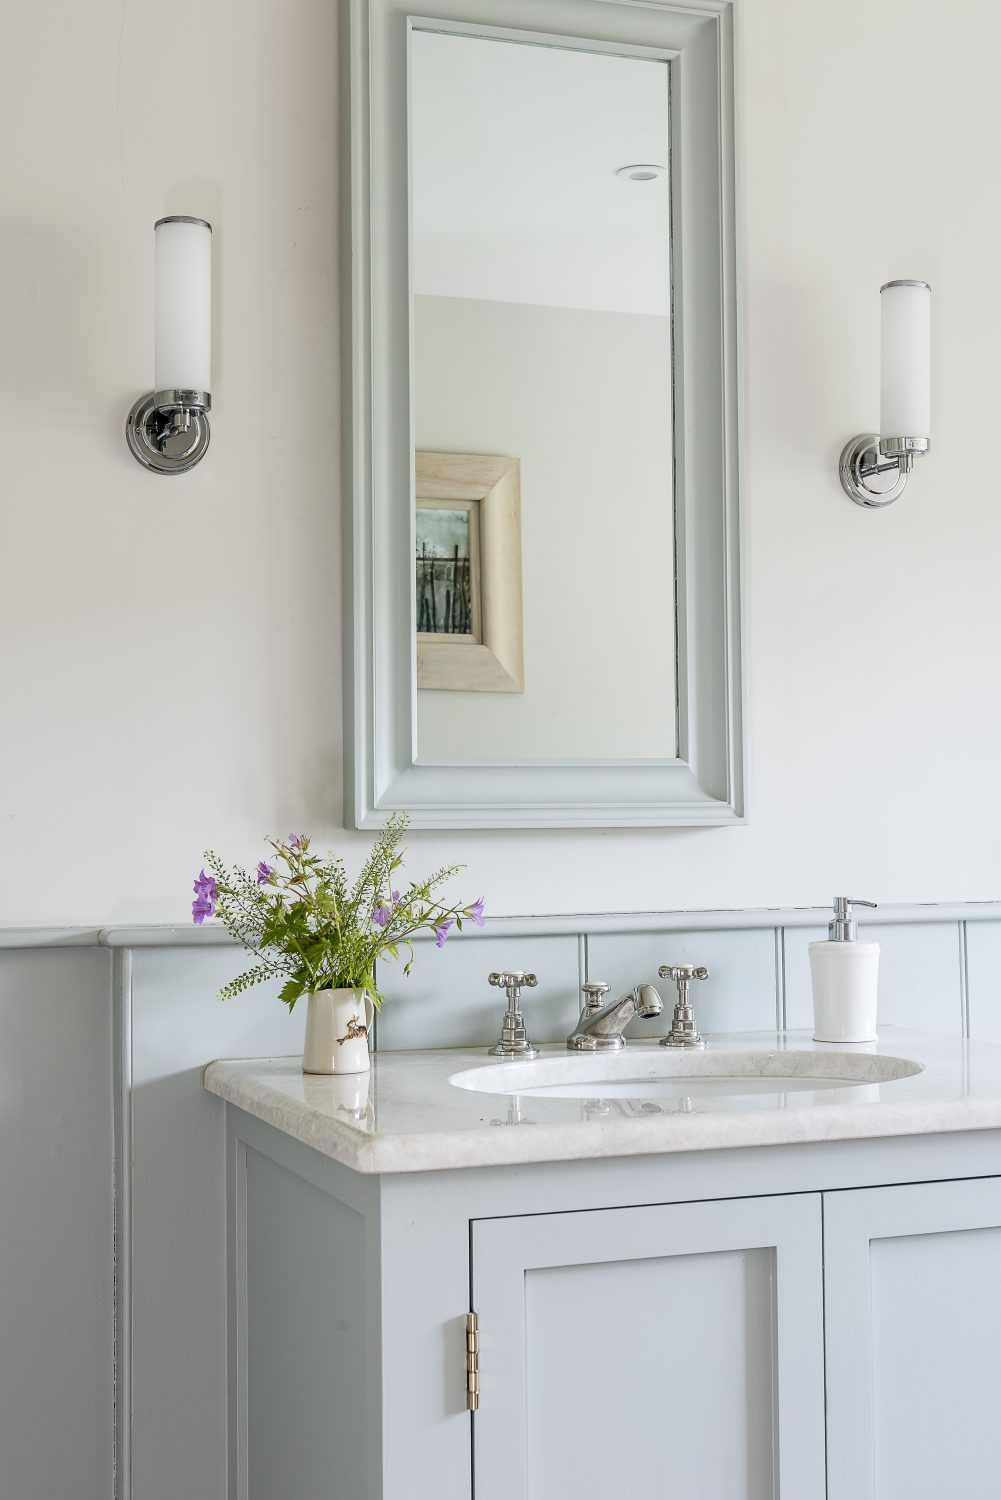 The wall sconces over the basin are by Heathfield & Co